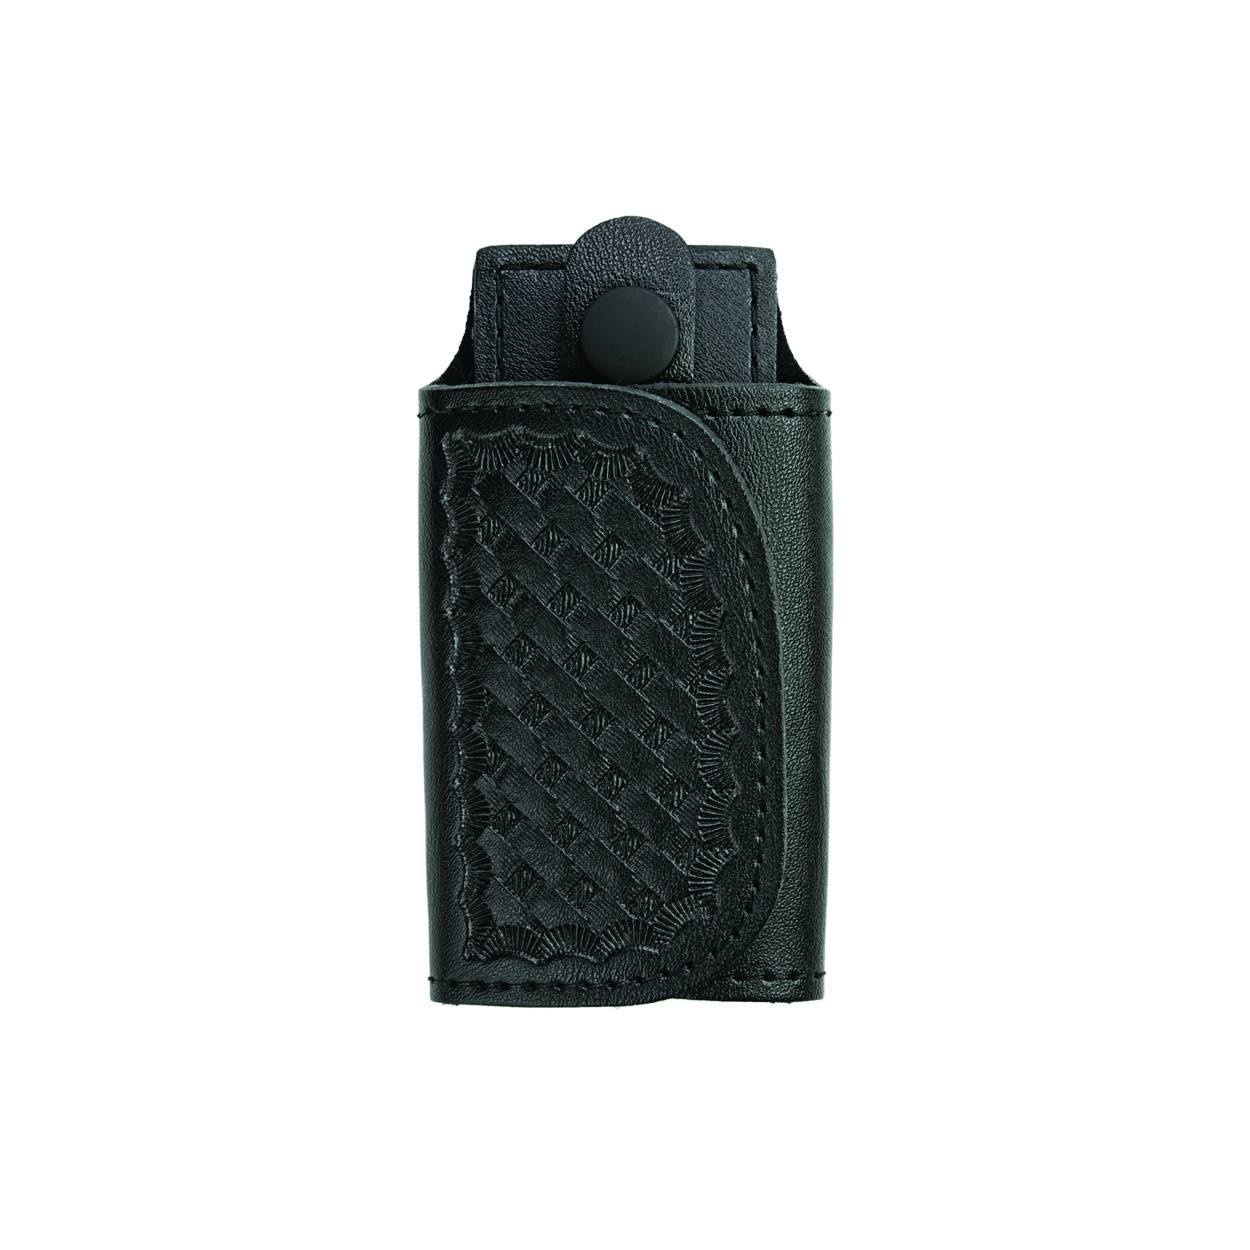 Key Holder, Silent, AirTek, BW, Black Snap-